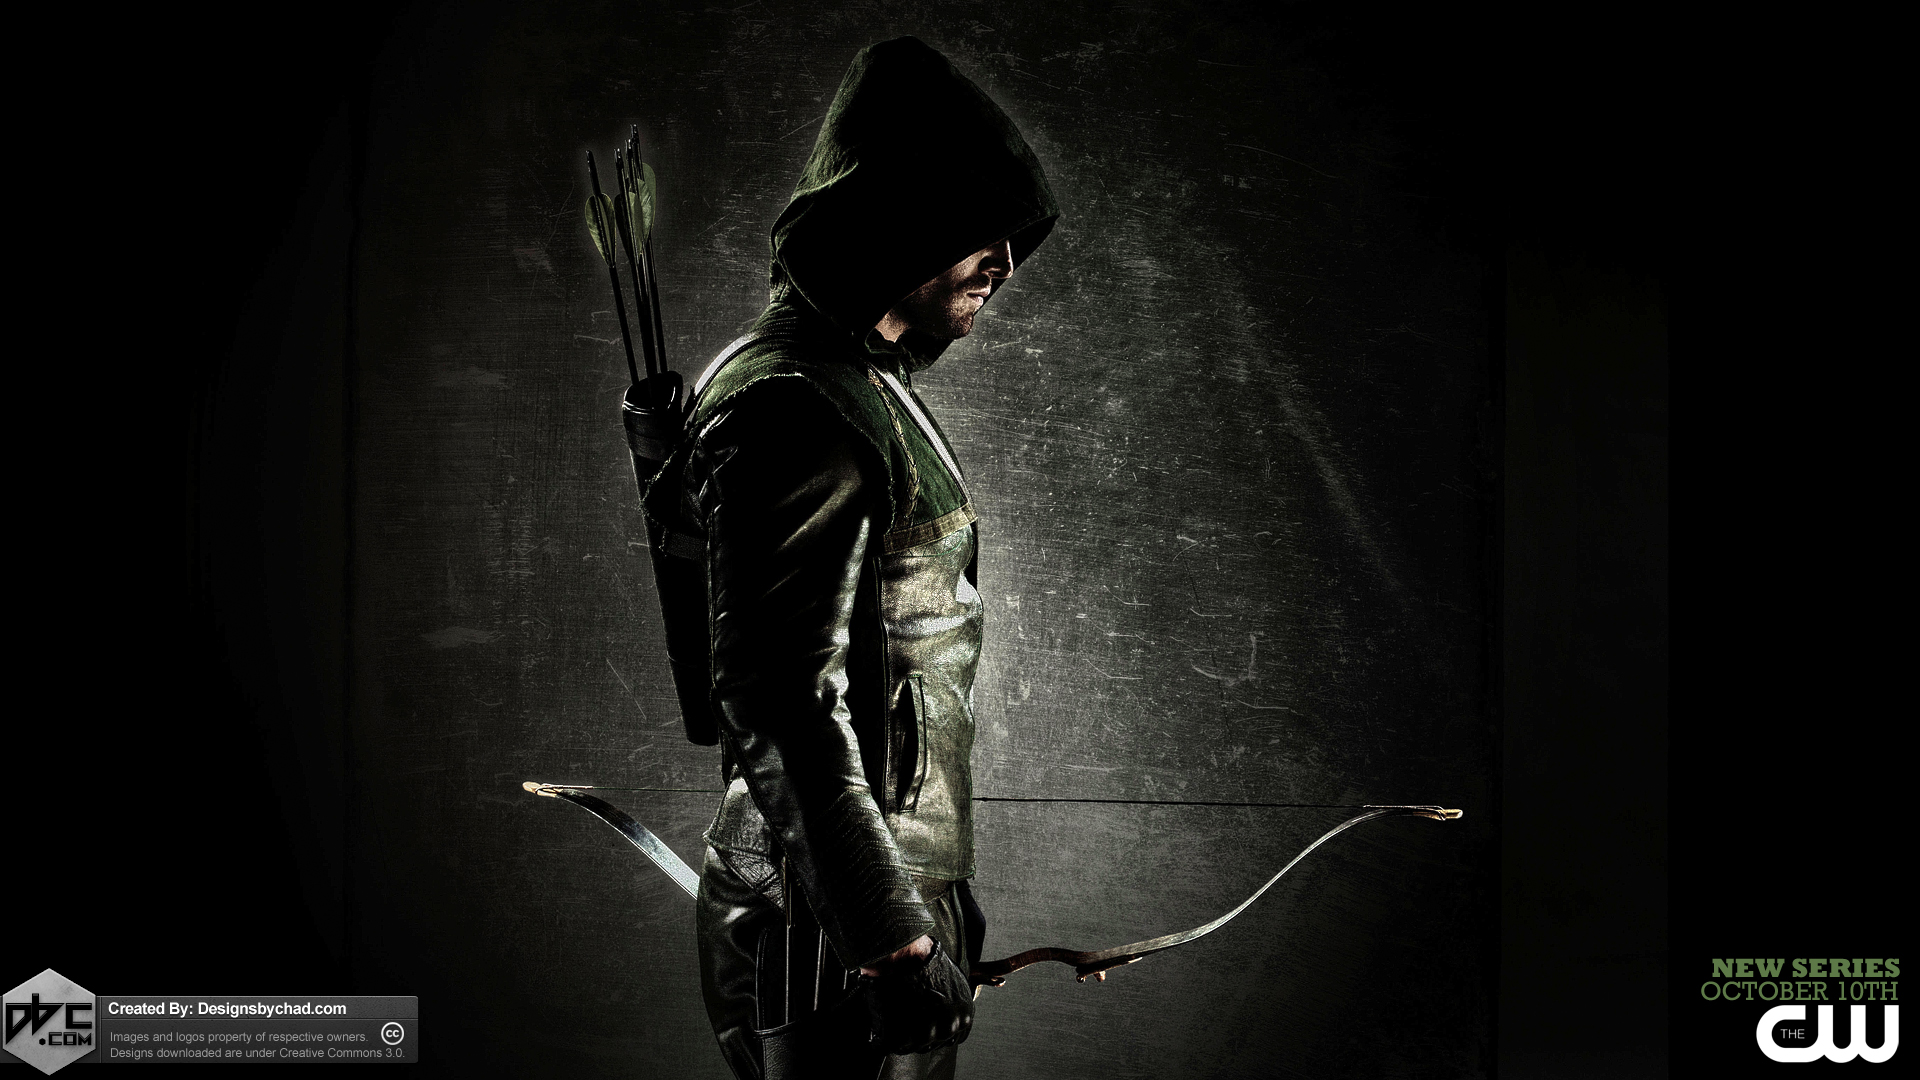 wallpaper other hd wallpaper for the cw s new series arrow load all 1920x1080